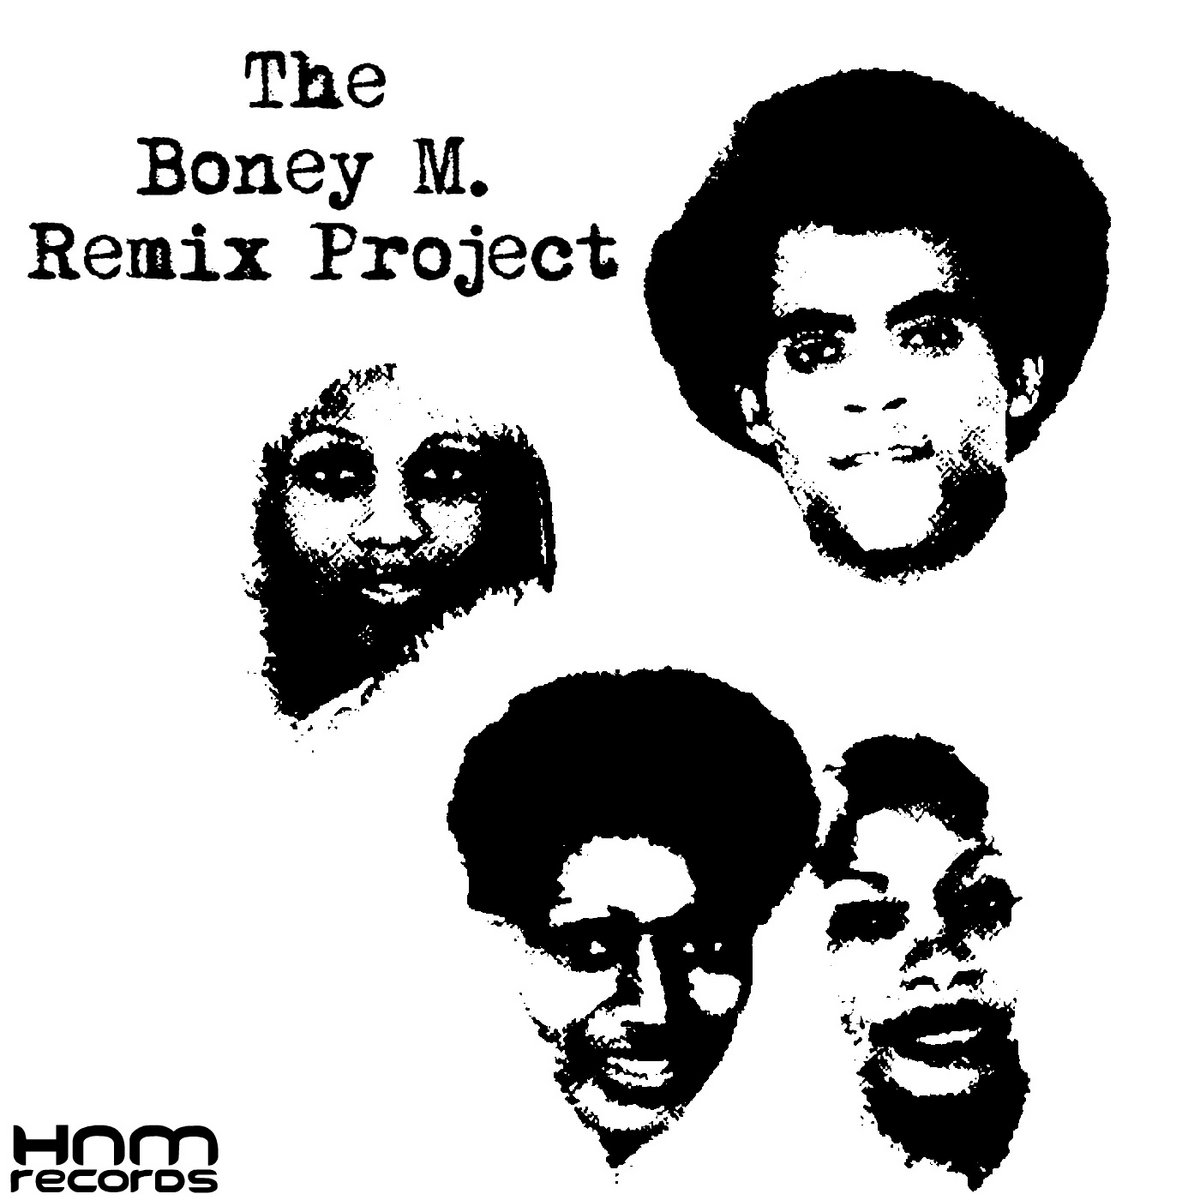 The boney m remix project harsh noise movement by various artists malvernweather Gallery